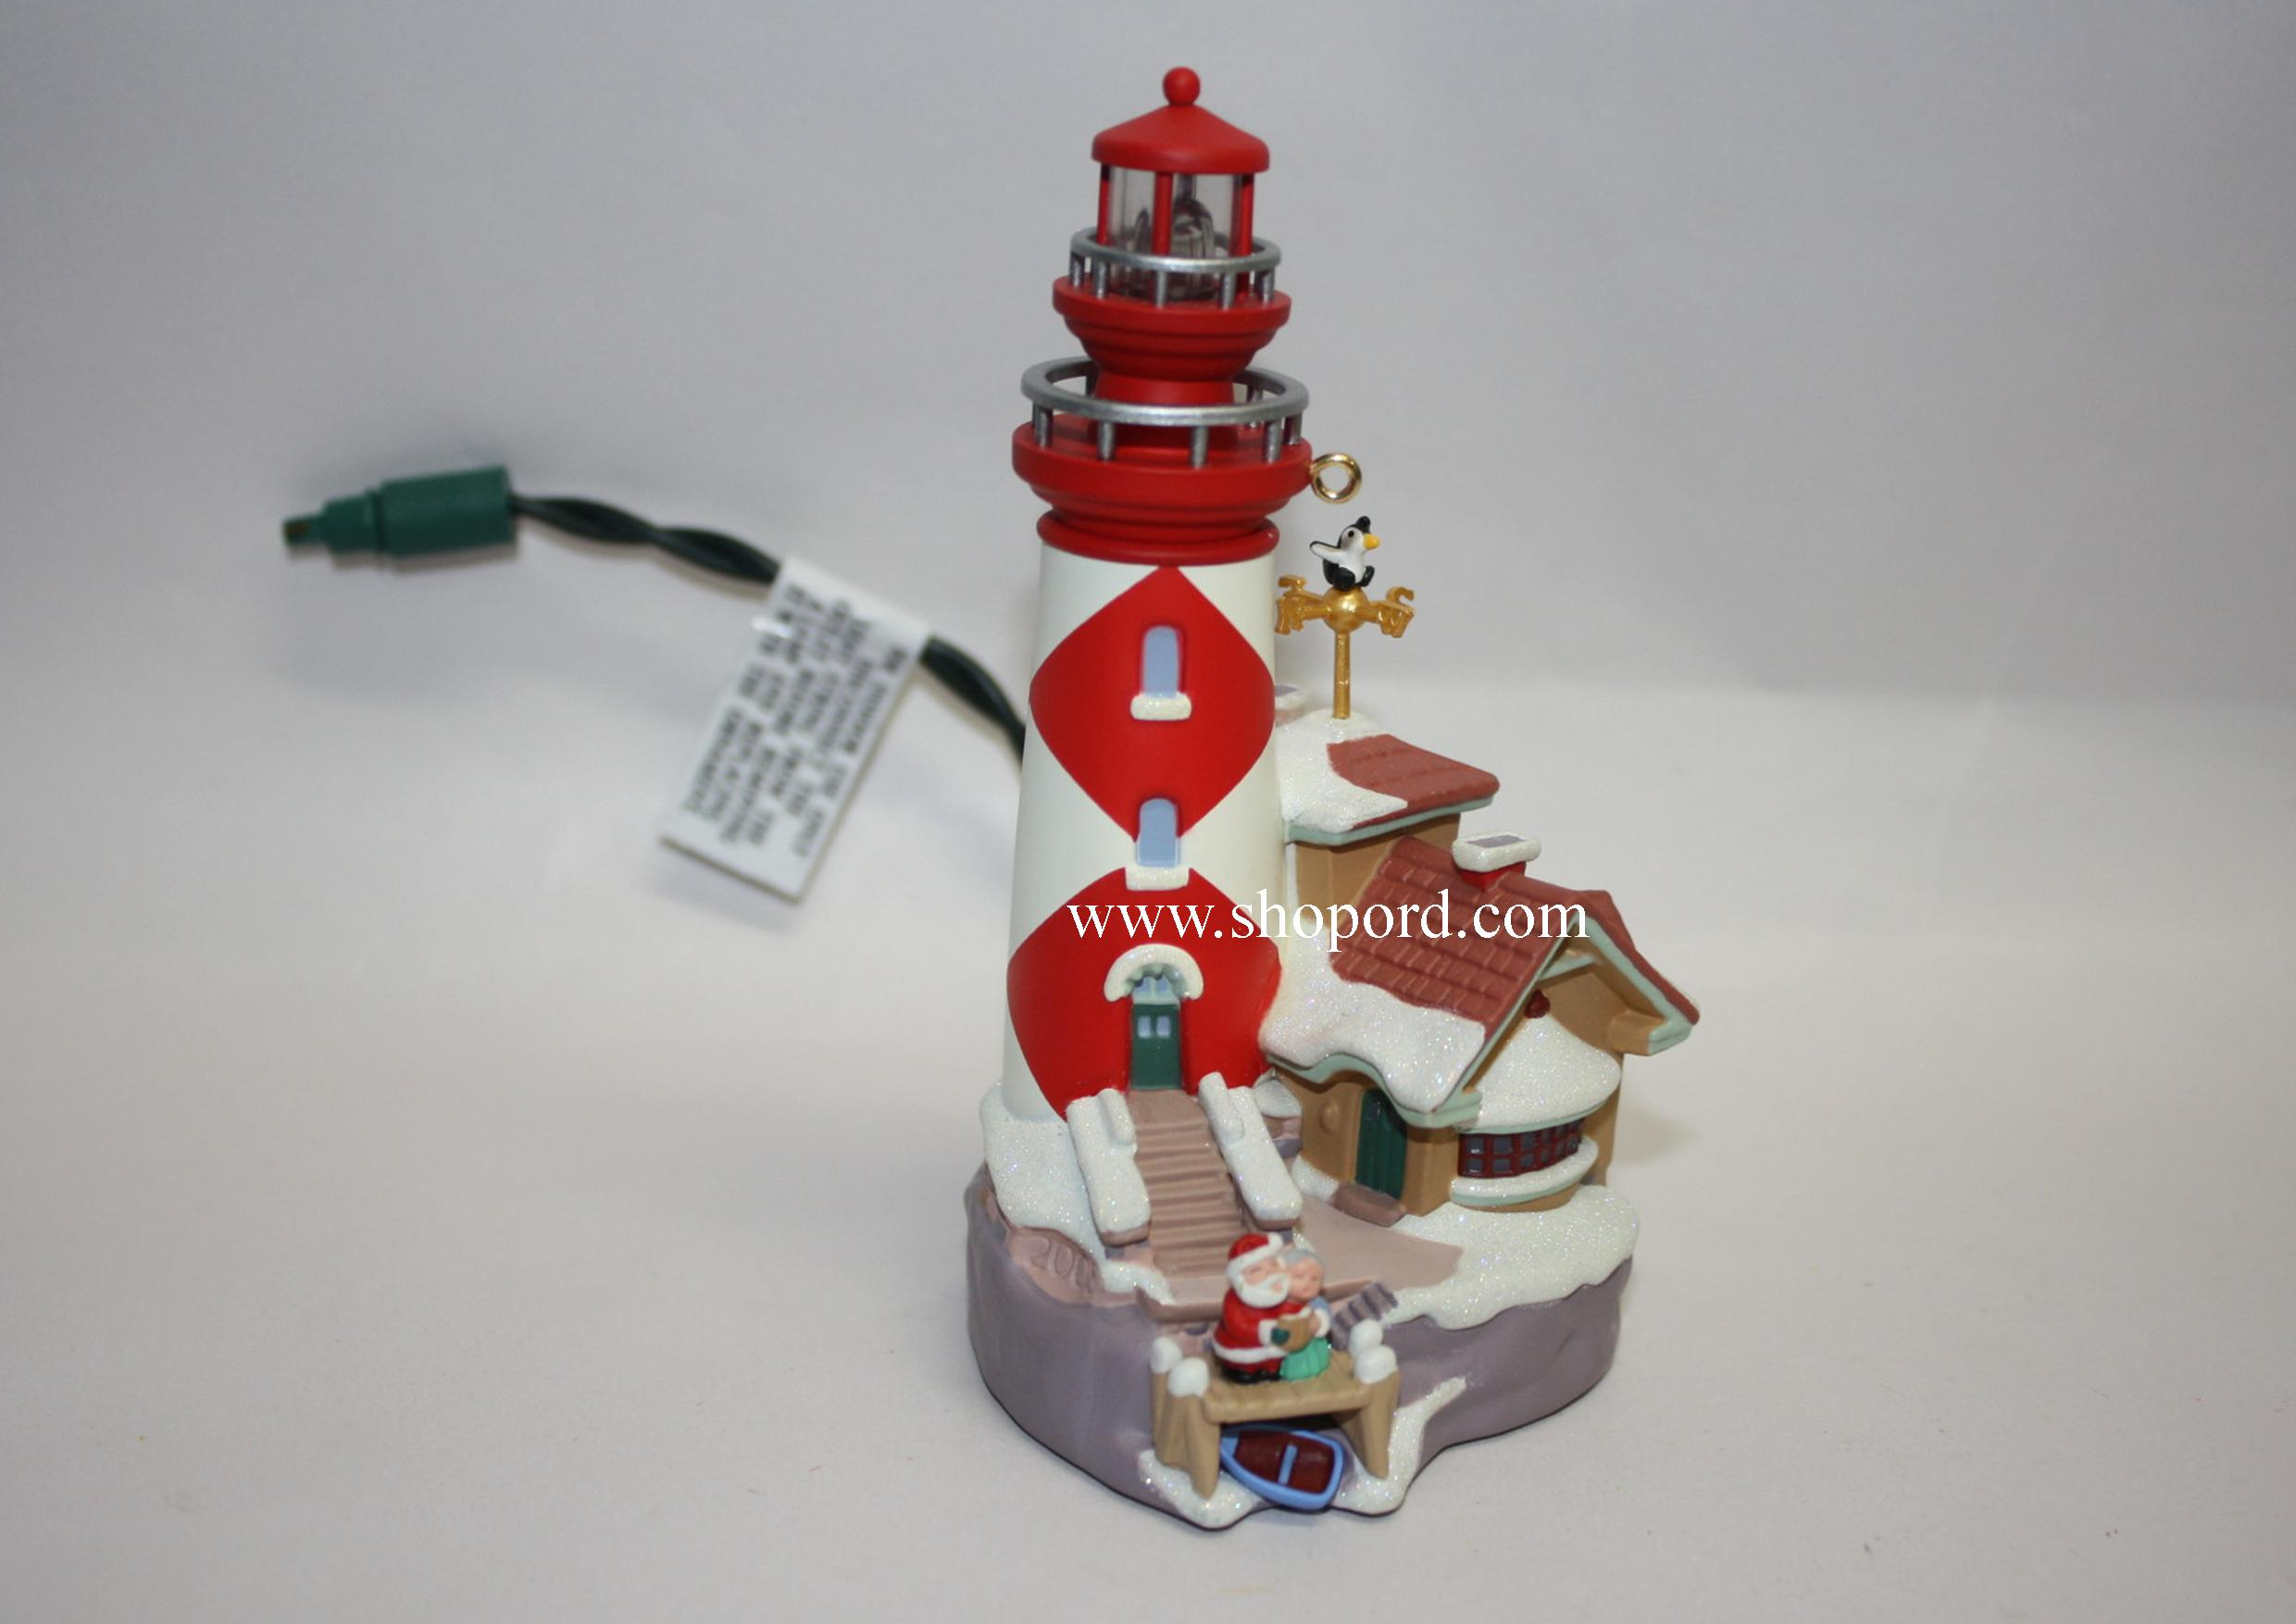 Hallmark 2005 Lighthouse Greetings Ornament 9th in the series QX2272